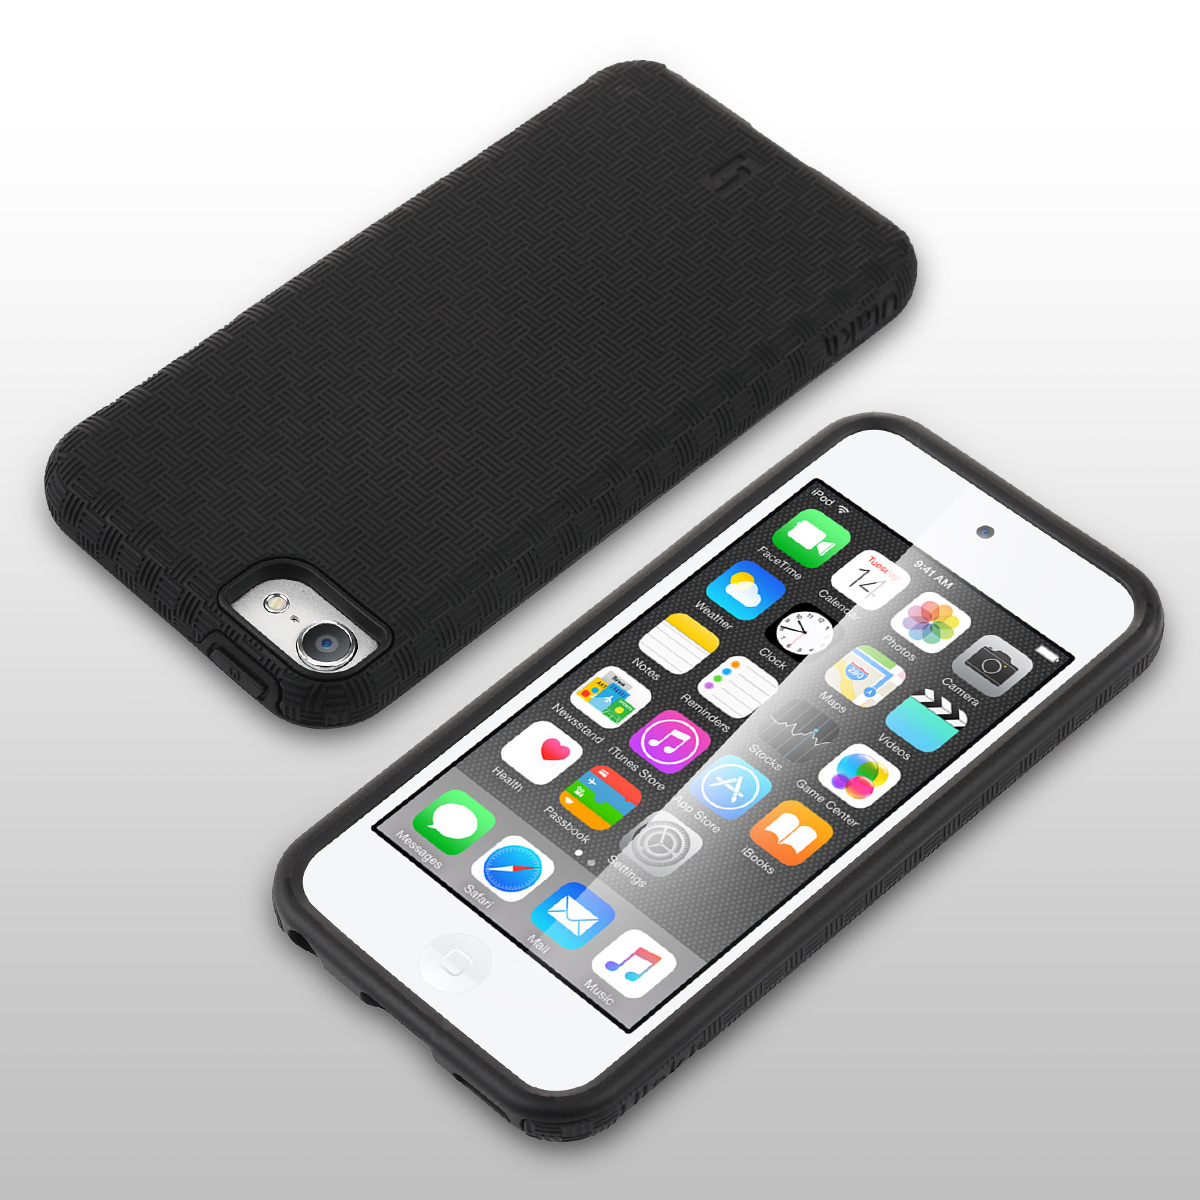 finest selection be1aa 422db Details about ULAK Shockproof Hard Rugged SLICK ARMOR Case Cover for Apple  iPod Touch 6/5th